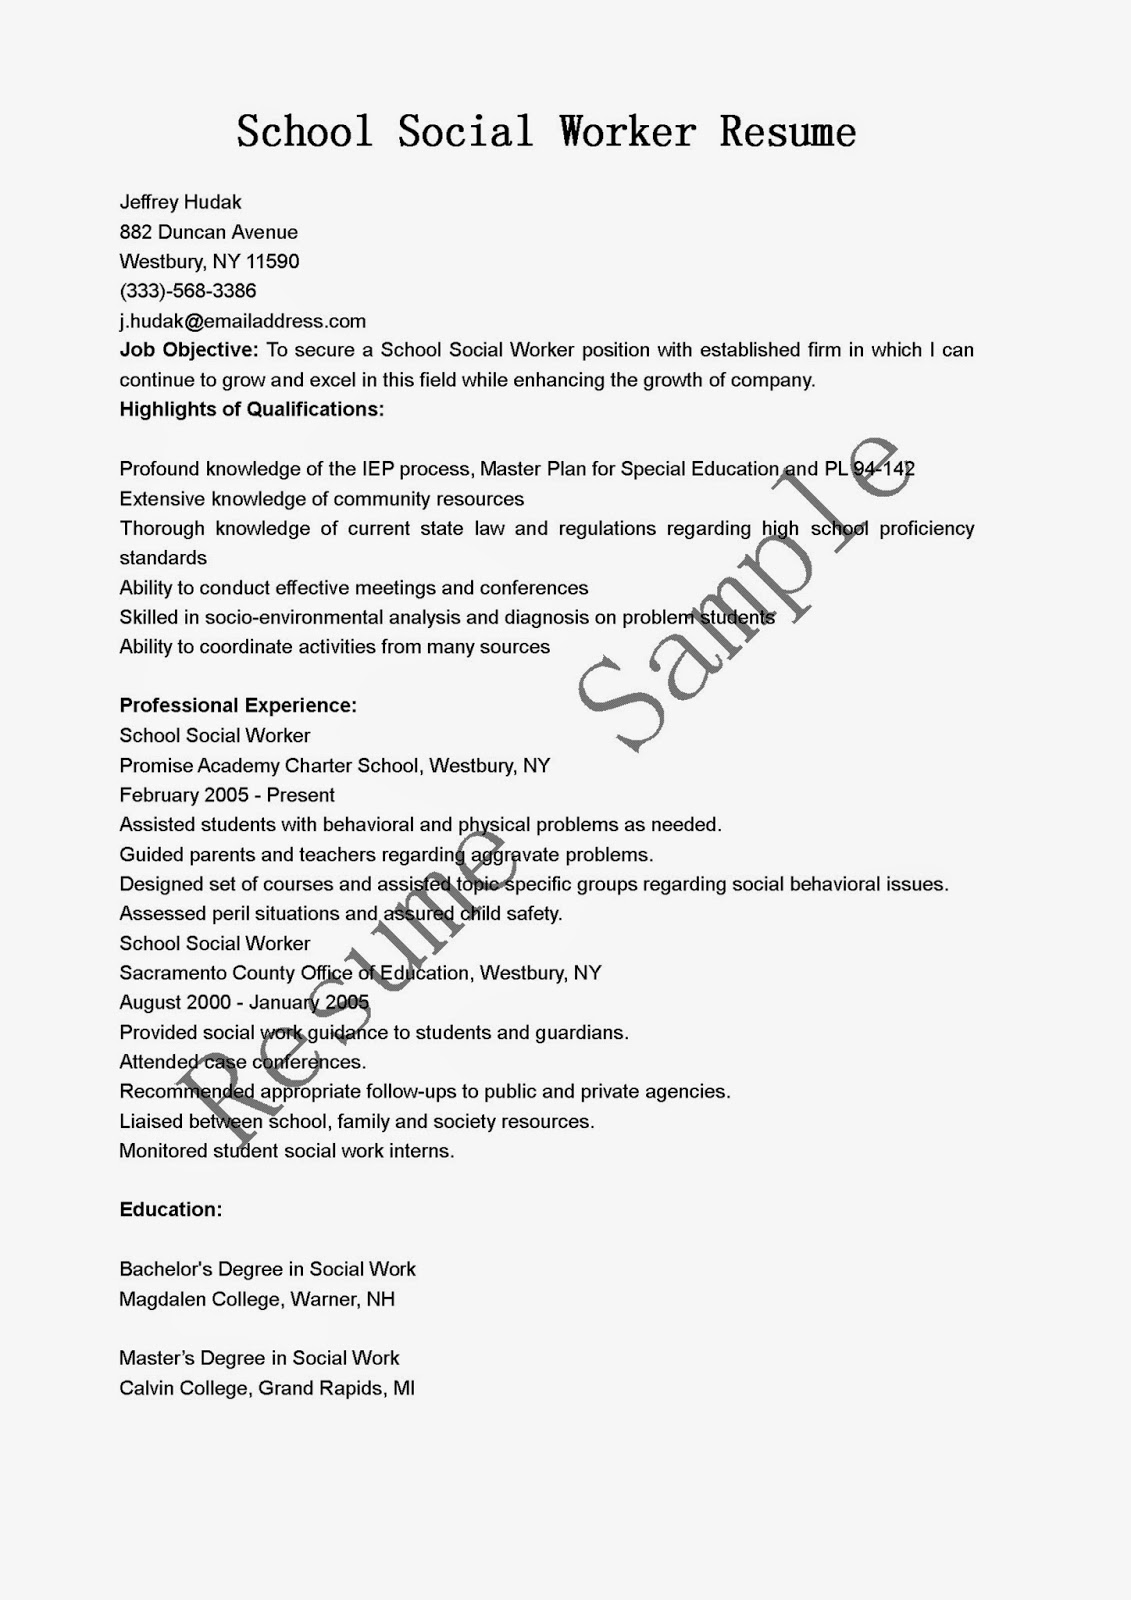 Sanitation Worker Resume Resume Samples School Social Worker Resume Sample